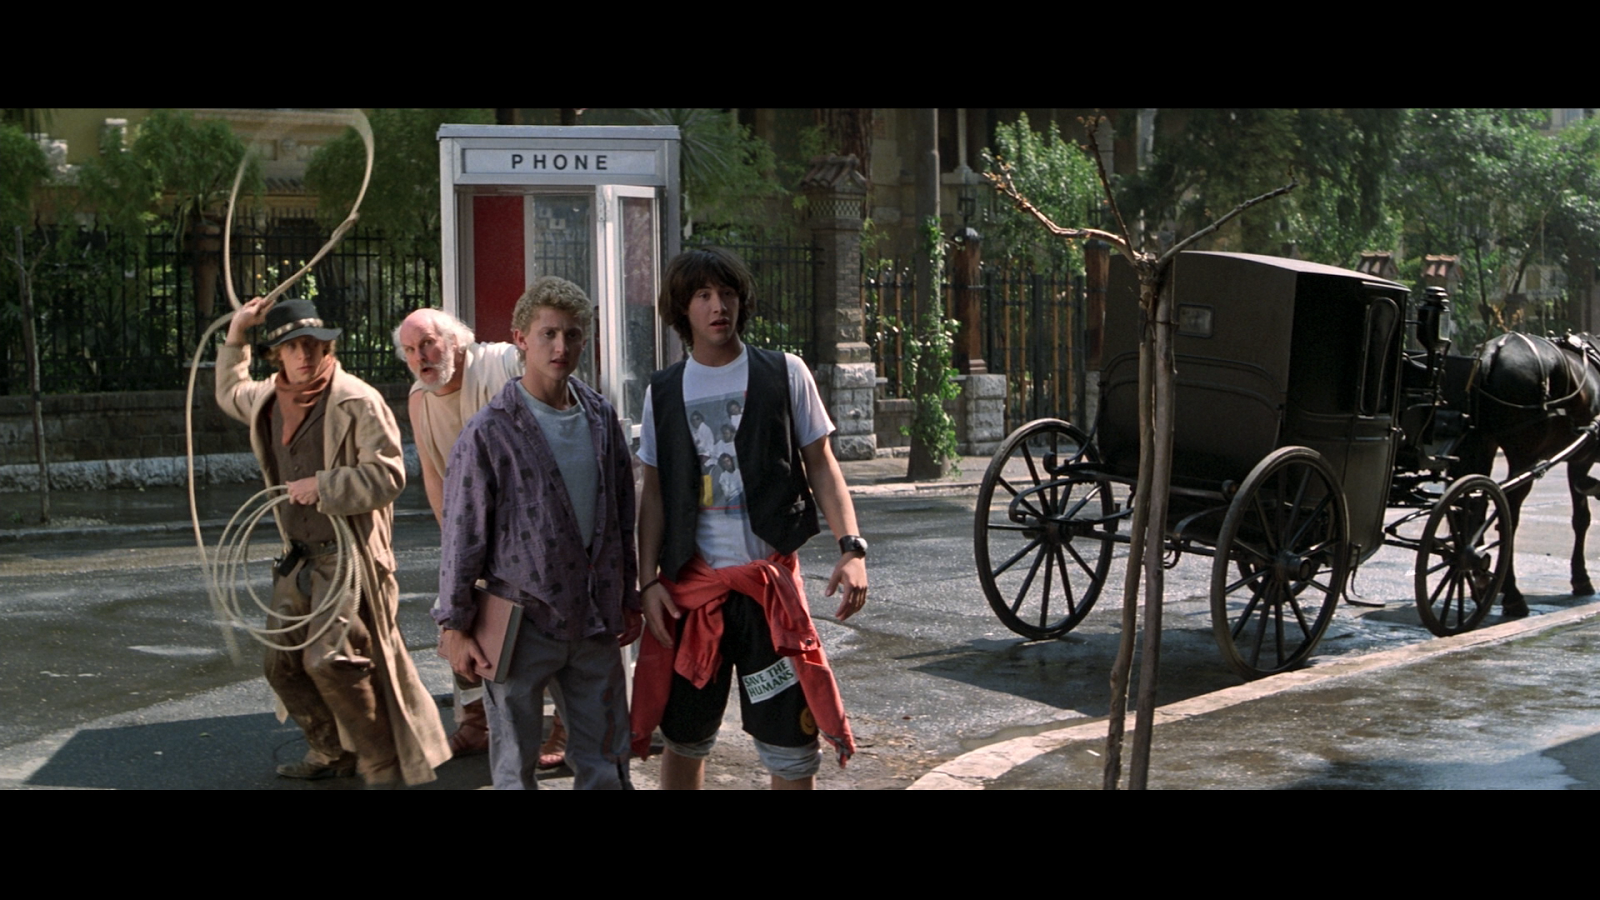 Images of Bill & Ted's Excellent Adventure | 1600x900